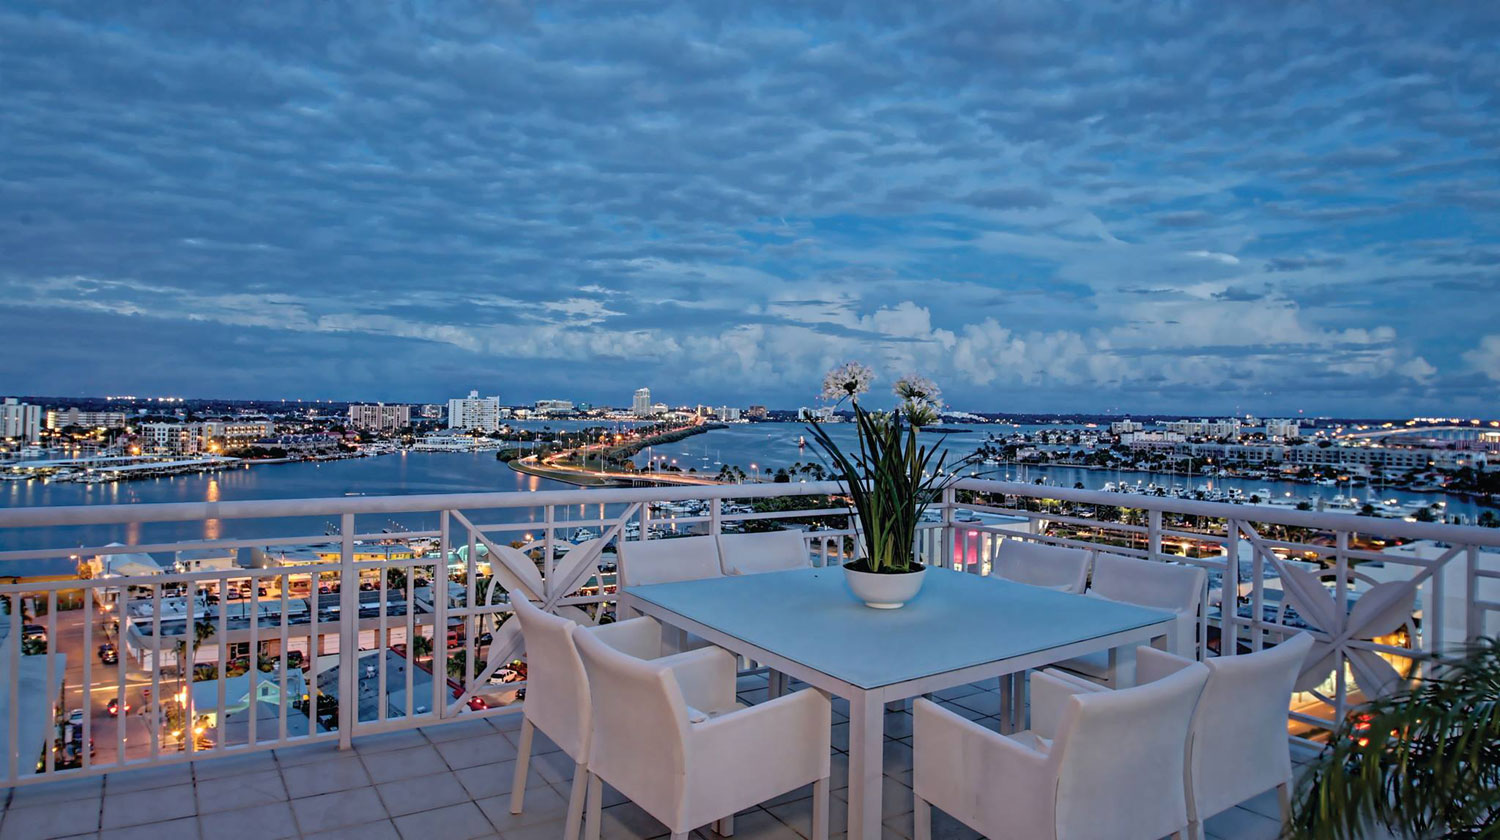 This luxury penthouse in the prestigious Mandalay Beach Club overlooks beautiful Clearwater Beach, Florida.